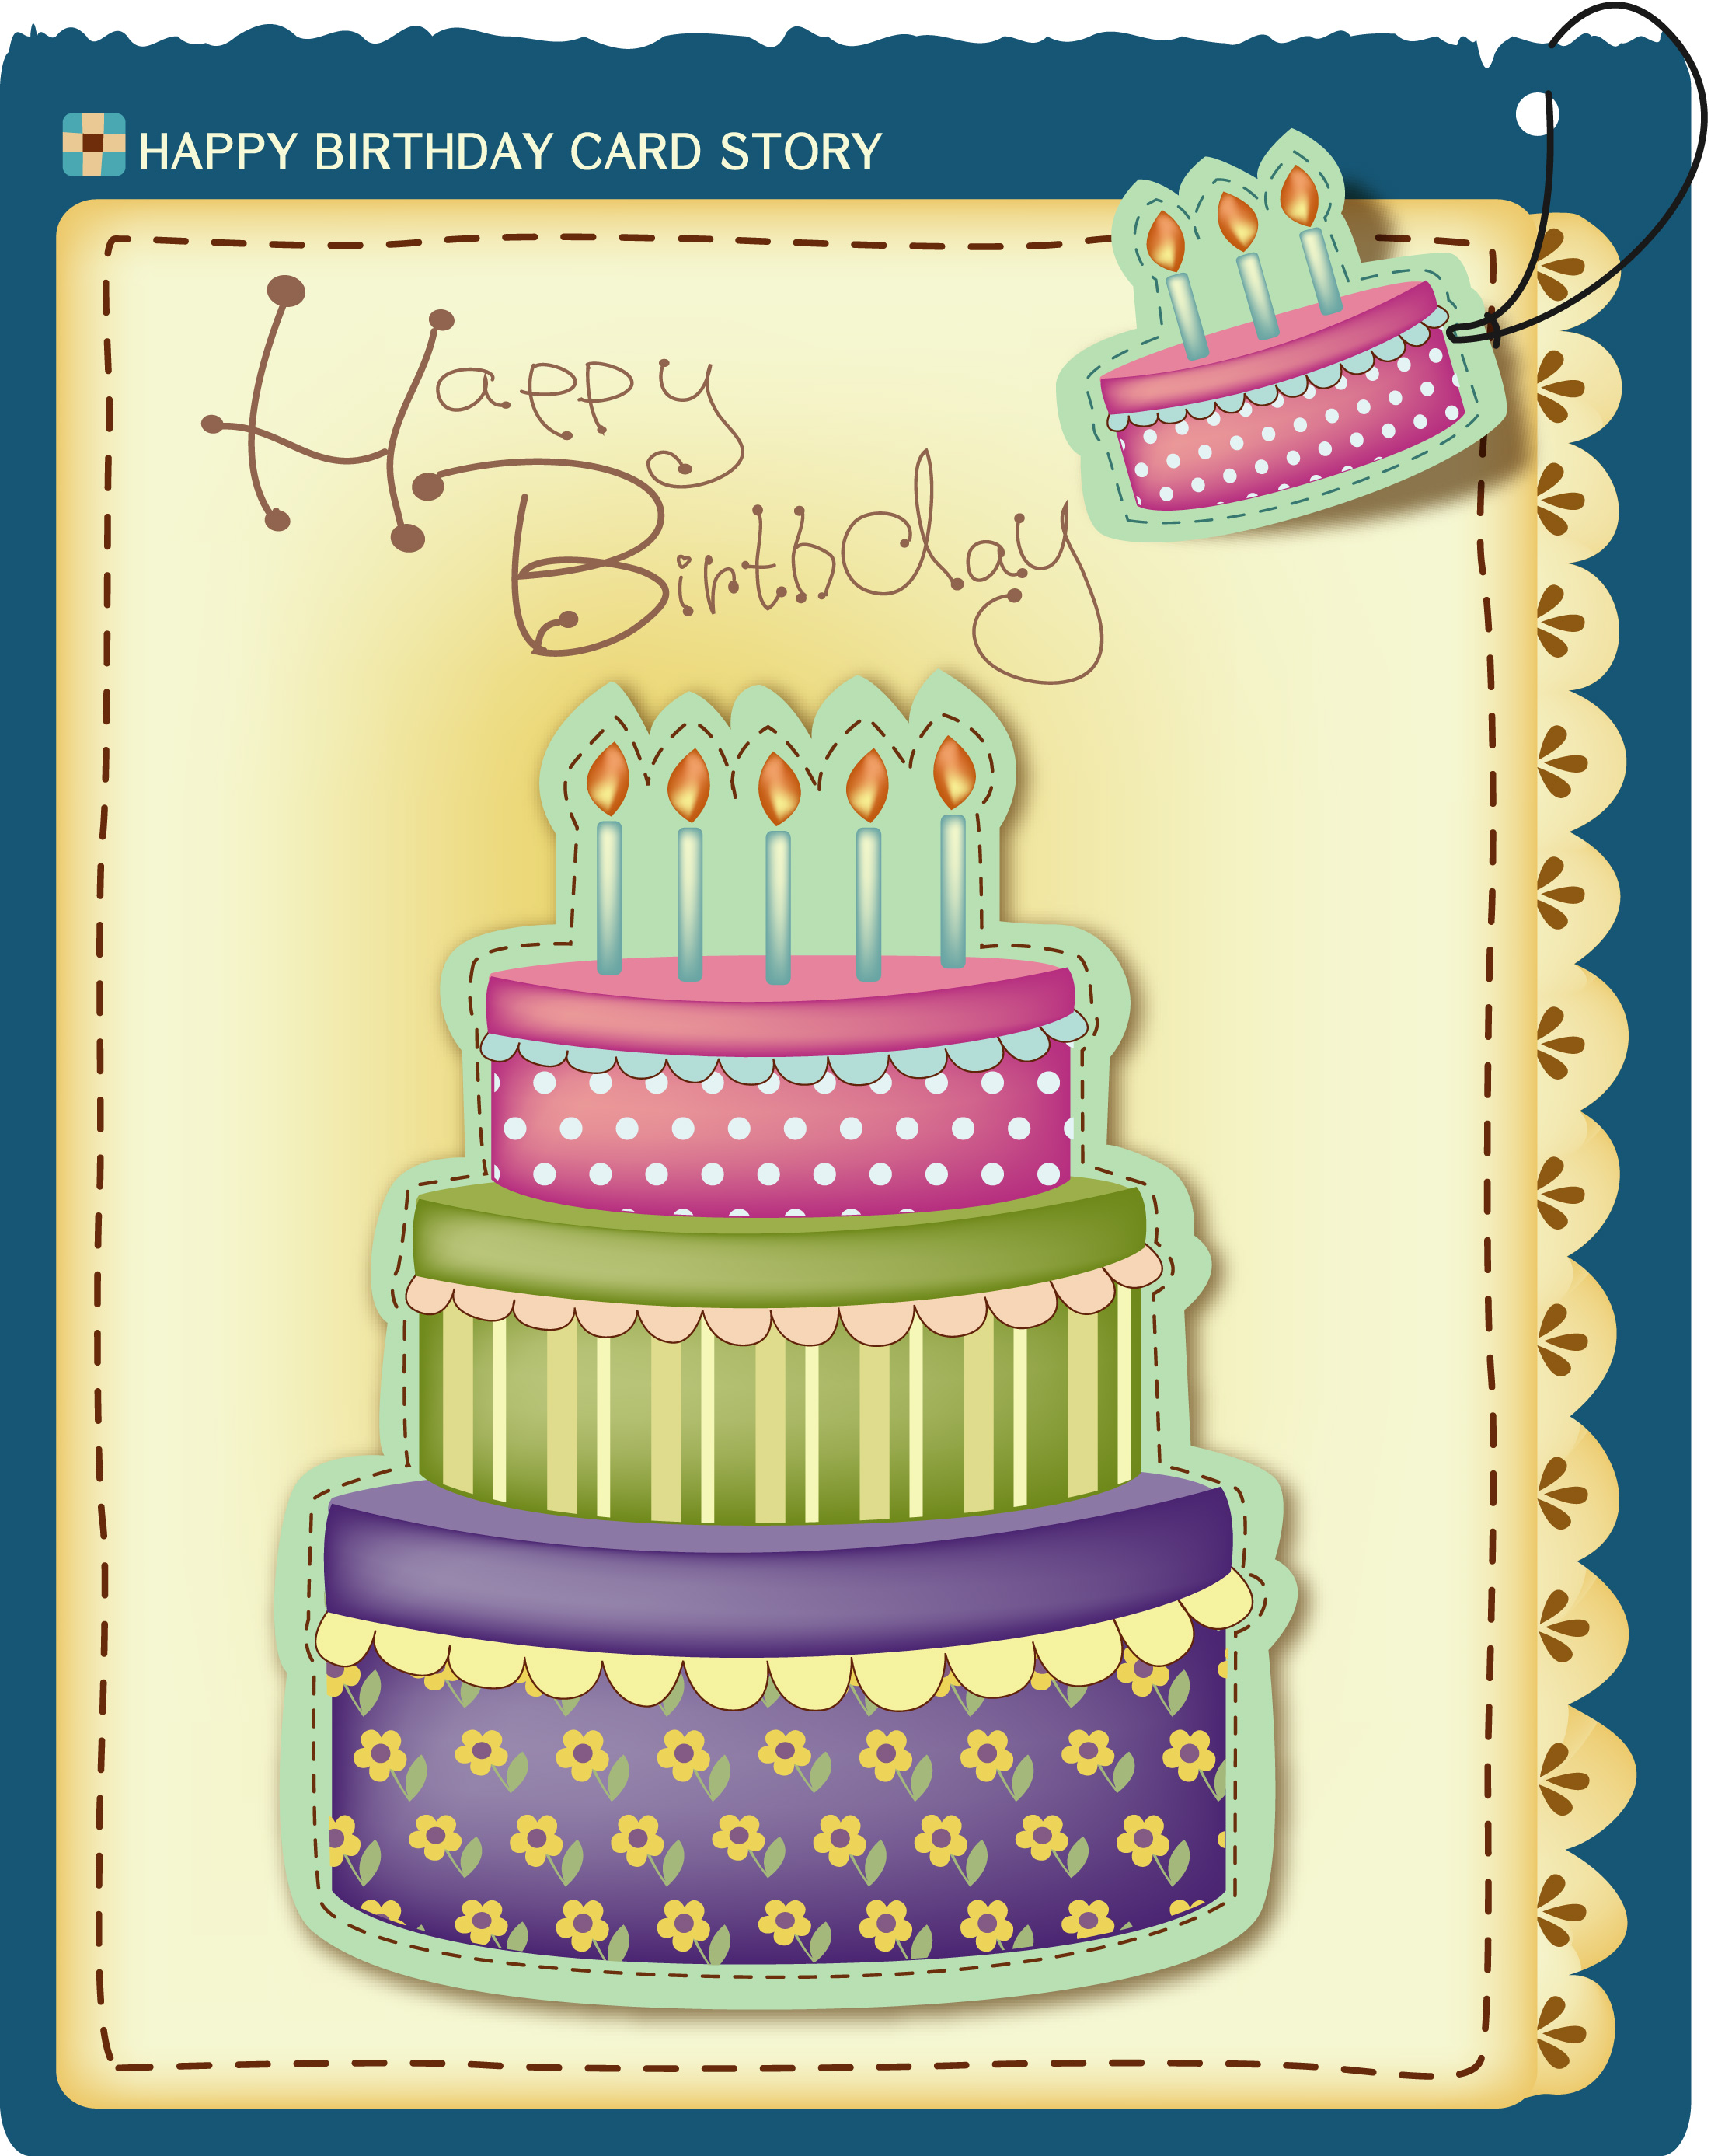 free personalized birthday cards with photos ; birthday-greeting-card-design-free-designs-for-birthday-cards-wonderful-design-collection-for-your-birthday-card-design-ideas-birthday-cards-design-with-big-cake-design